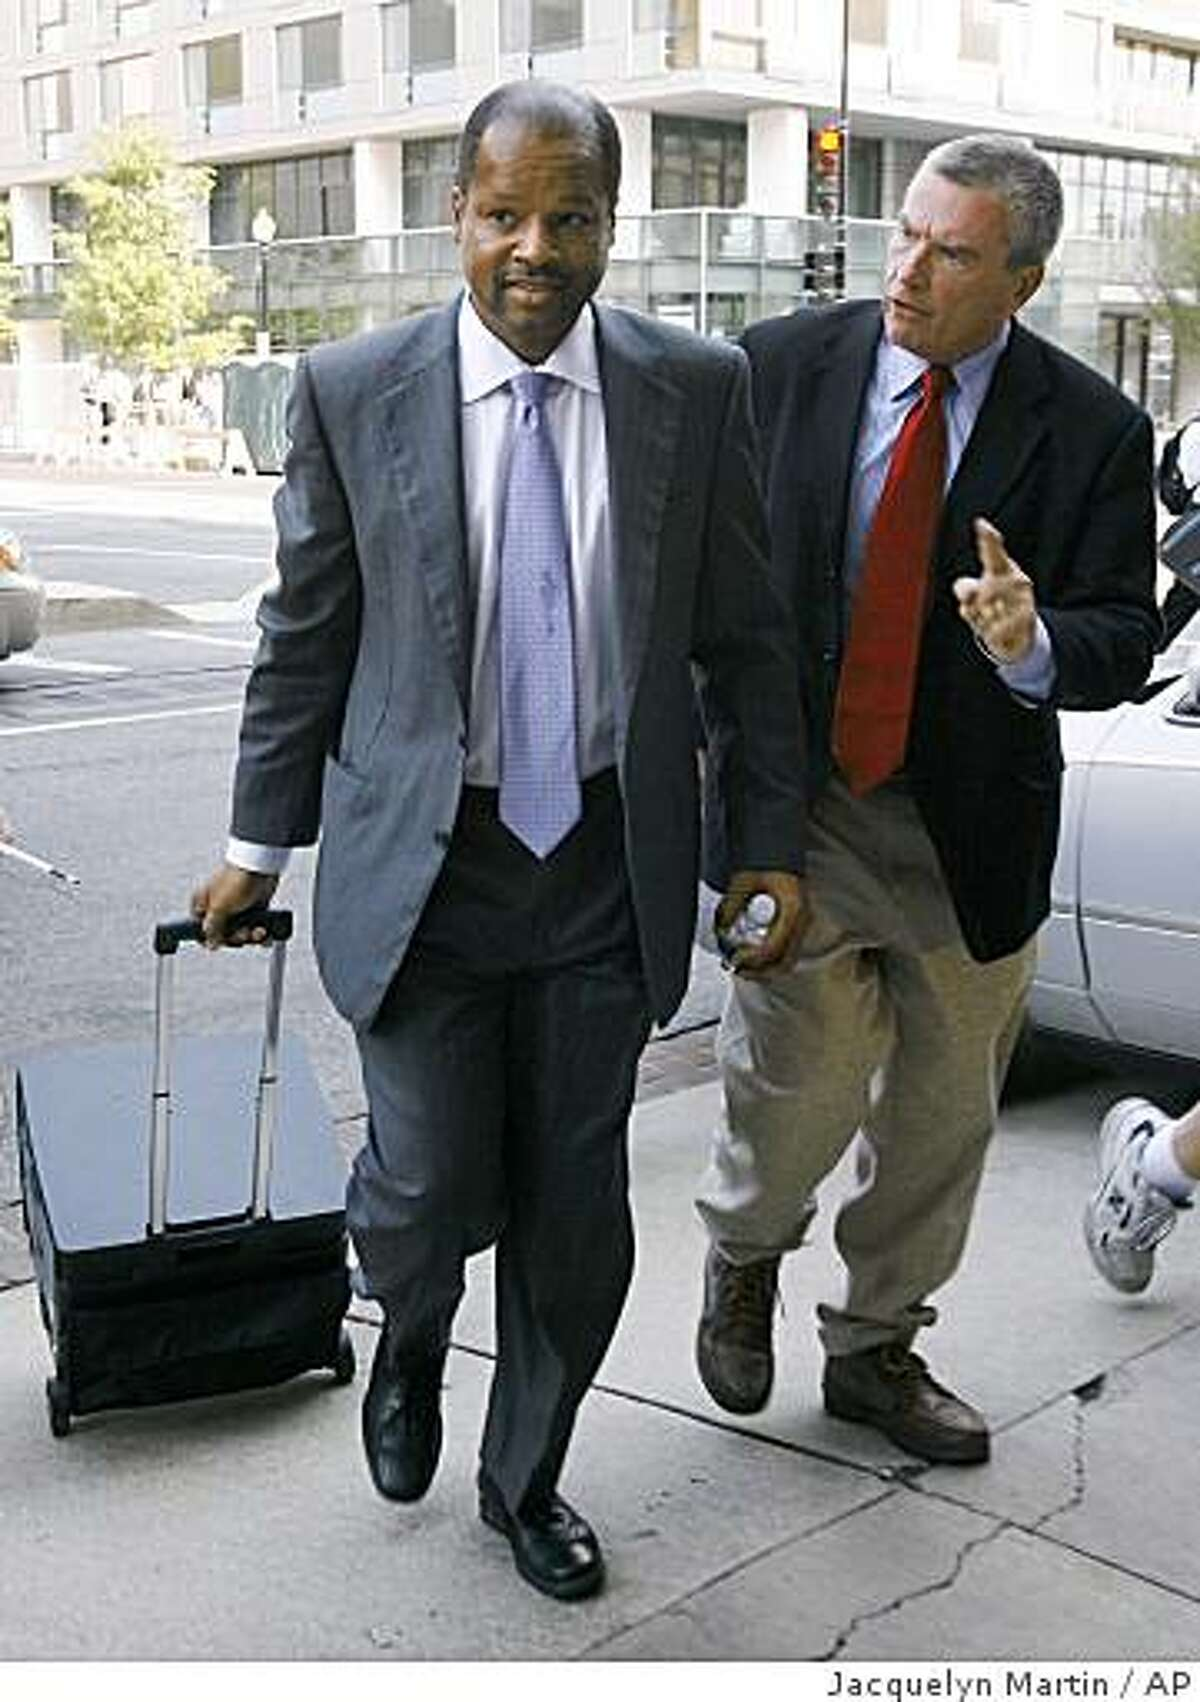 **FILE**In this file photo from June 13, 2007, Roy Pearson, left, is questioned by a member of the media as he leaves court after the second day of his lawsuit over a missing pair of pants in Washington. Pearson returned to court Wednesday, Oct. 22, 2008, over a year after his claim was rejected of being defrauded by a